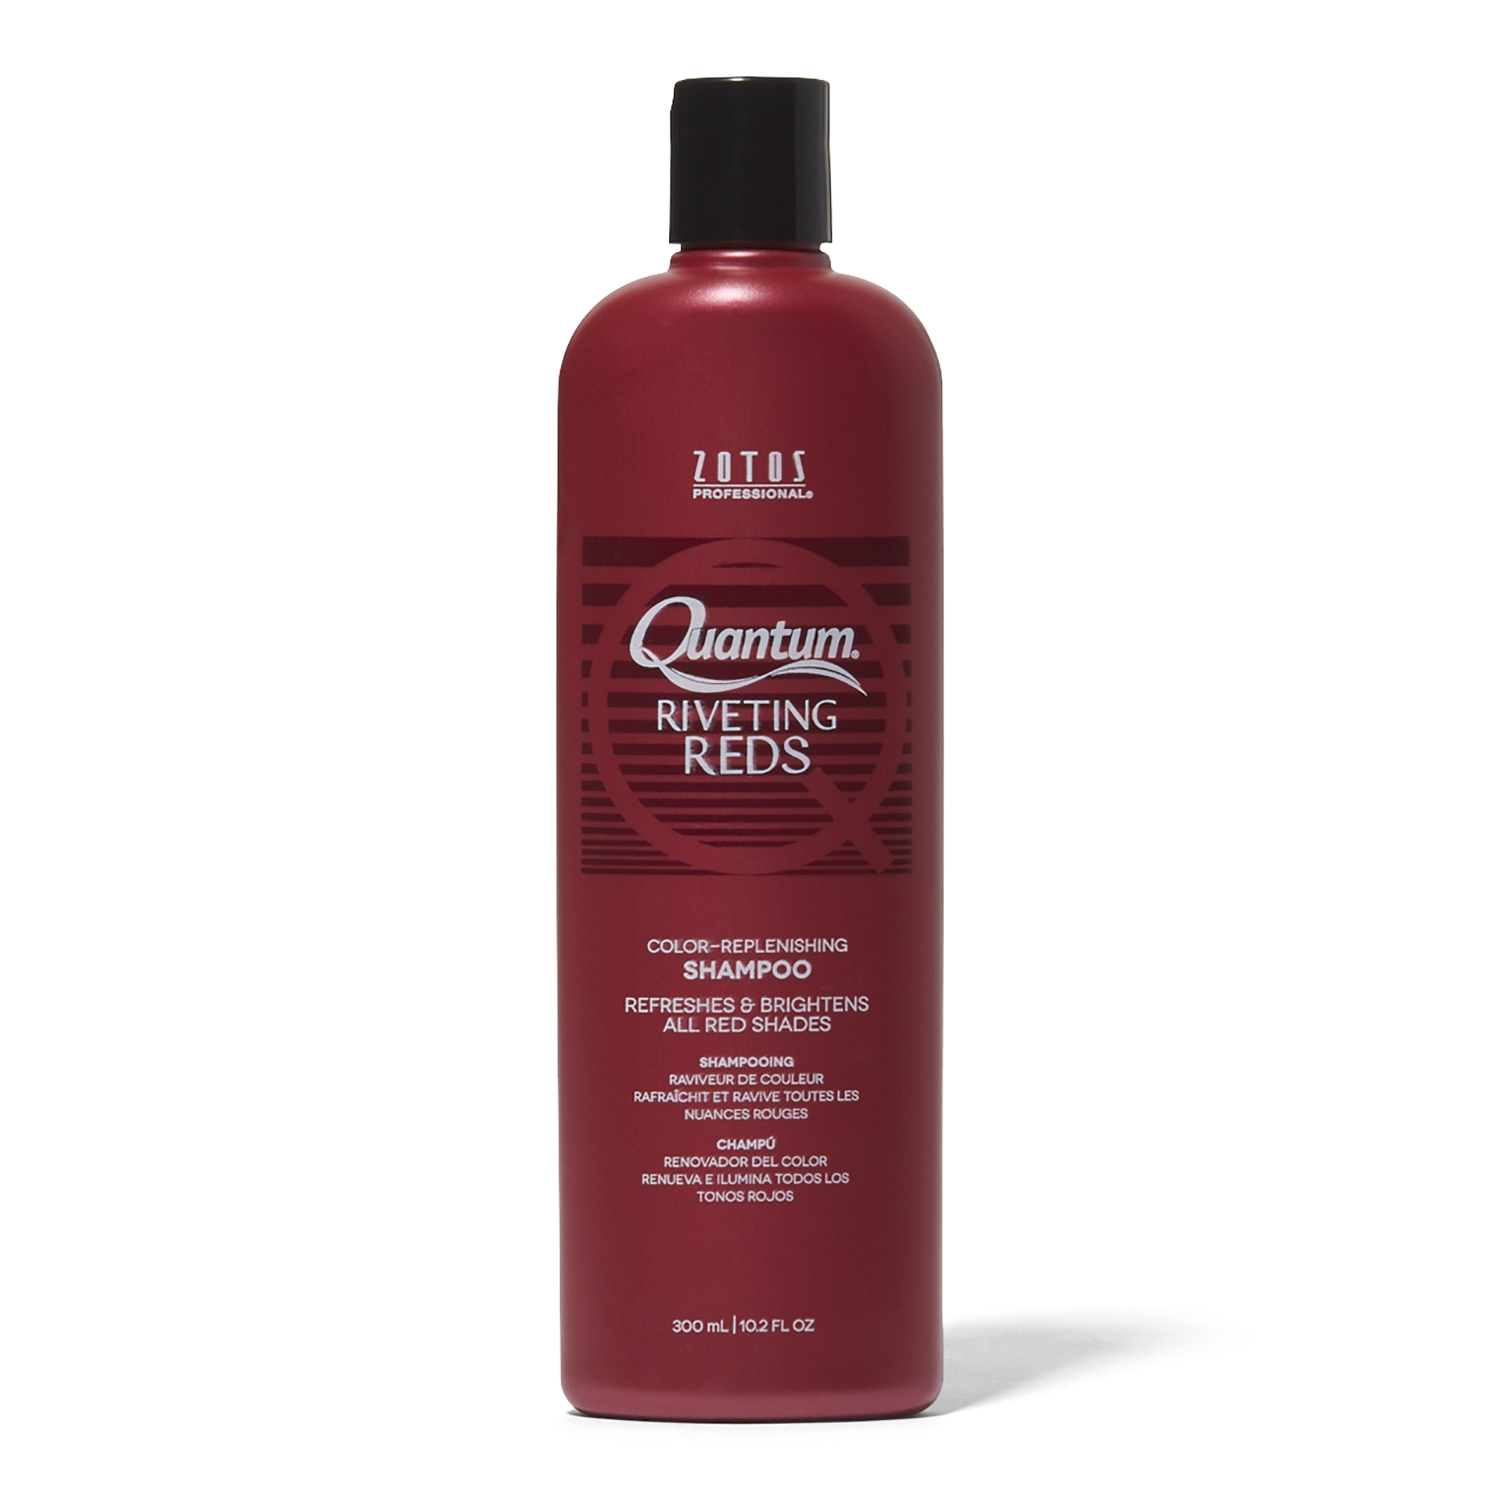 Quantum Riveting Reds Daily Color Replenishing Shampoo